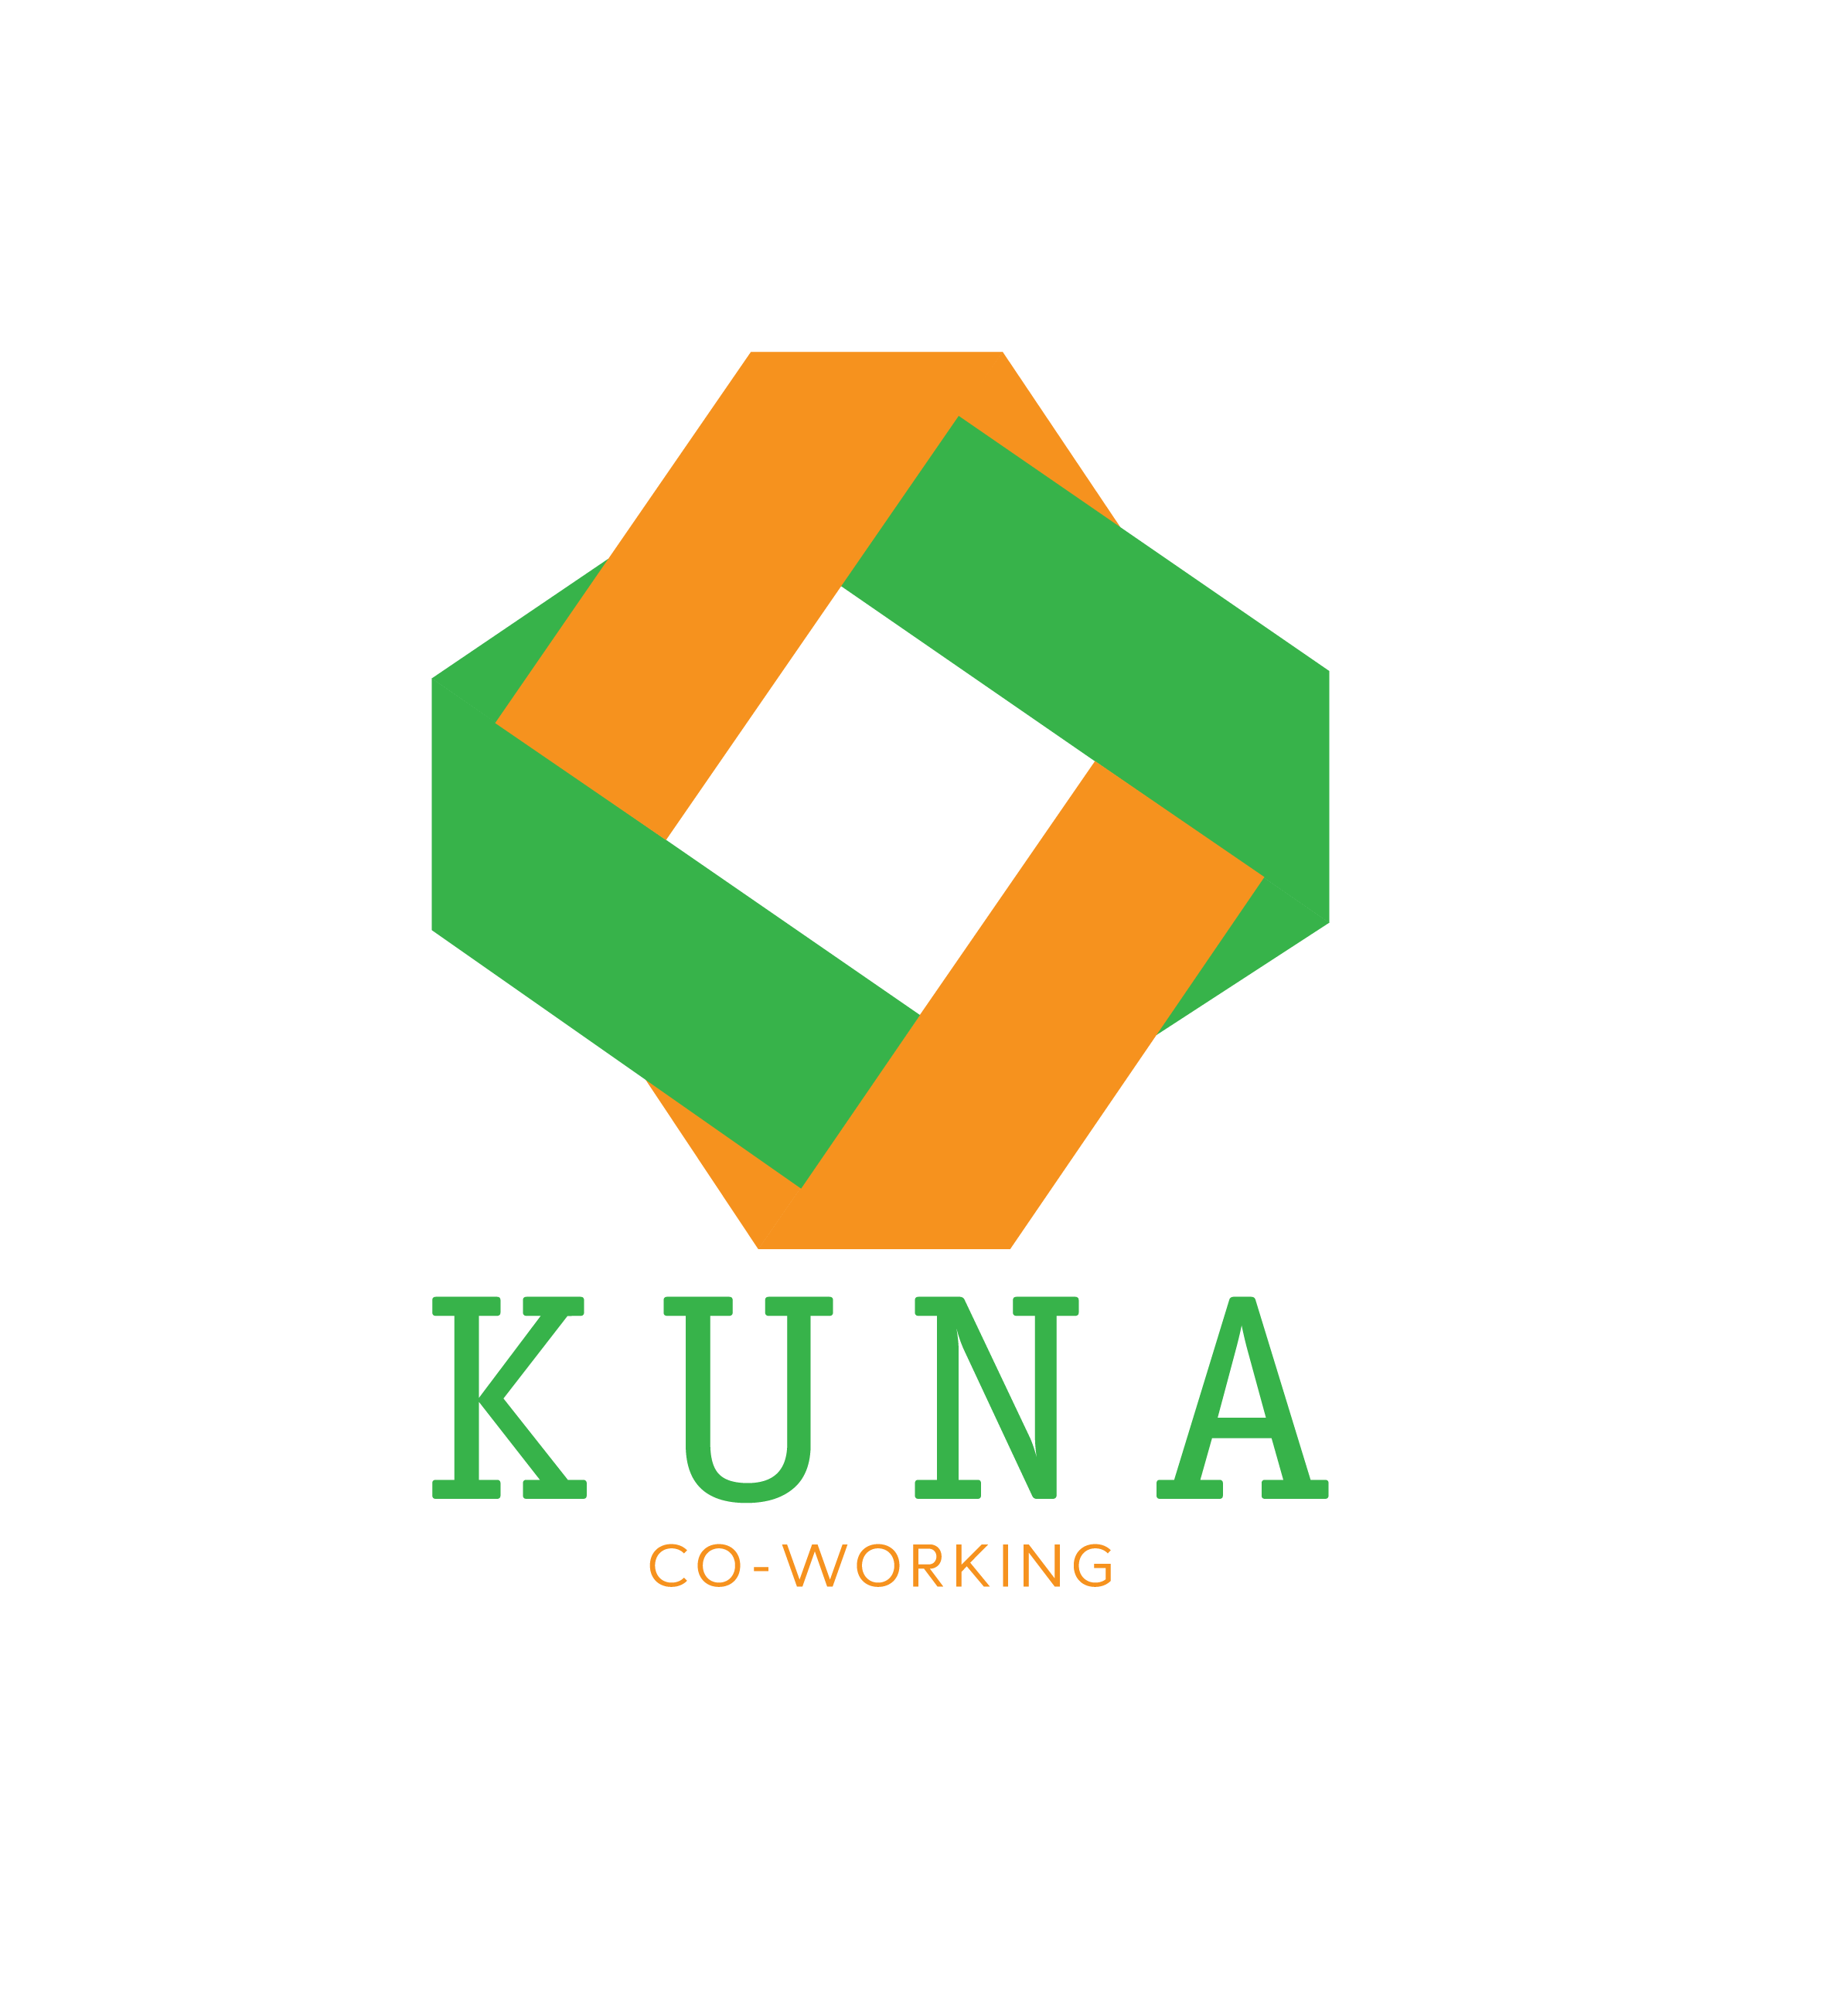 Kuna Co-Working Logo